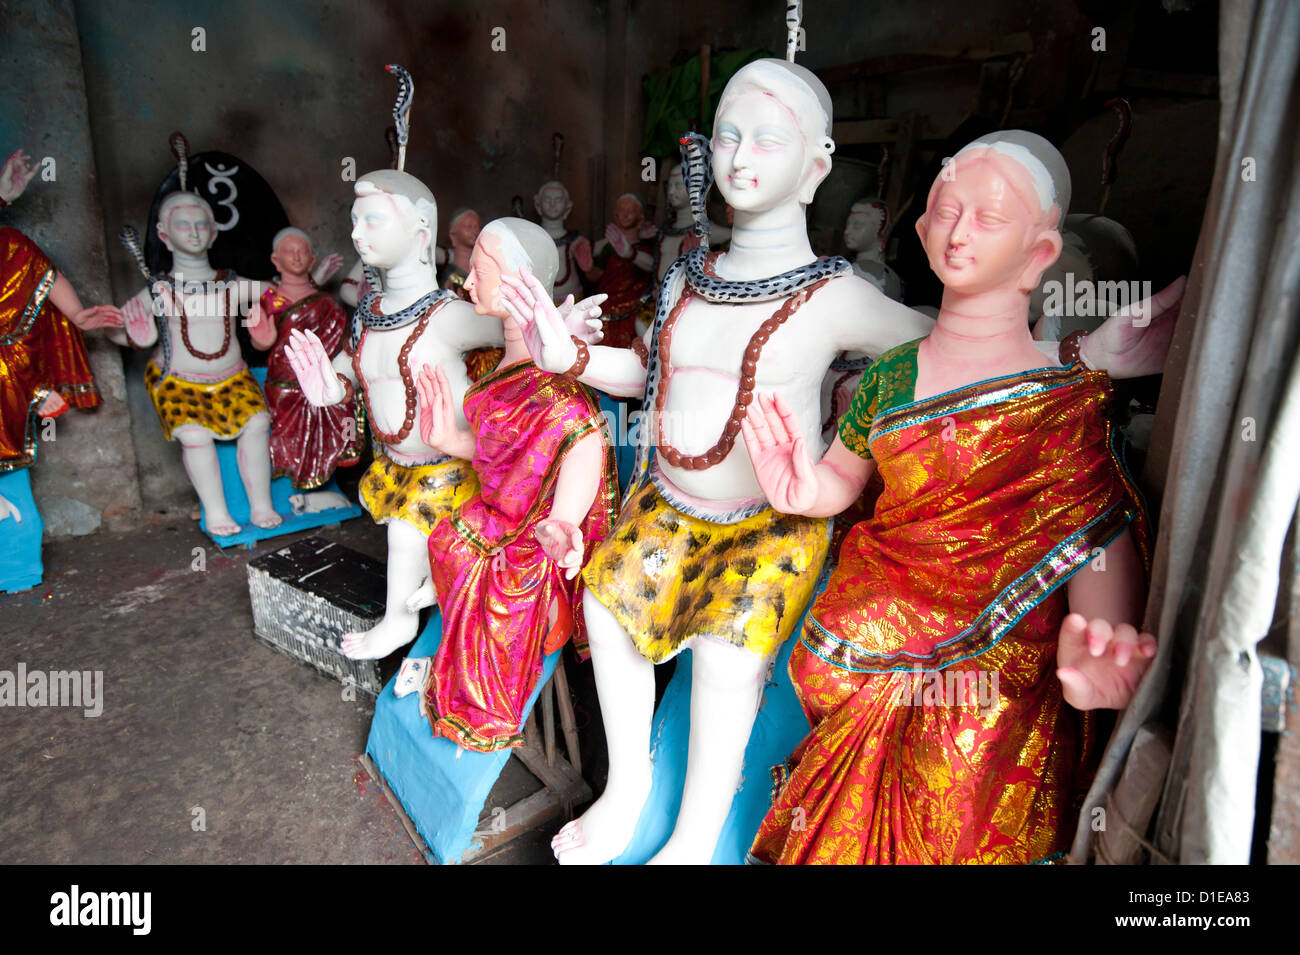 Finished, painted and dressed deities ready for offering at festival pujas, Kumartuli district, Kolkata, West Bengal, - Stock Image